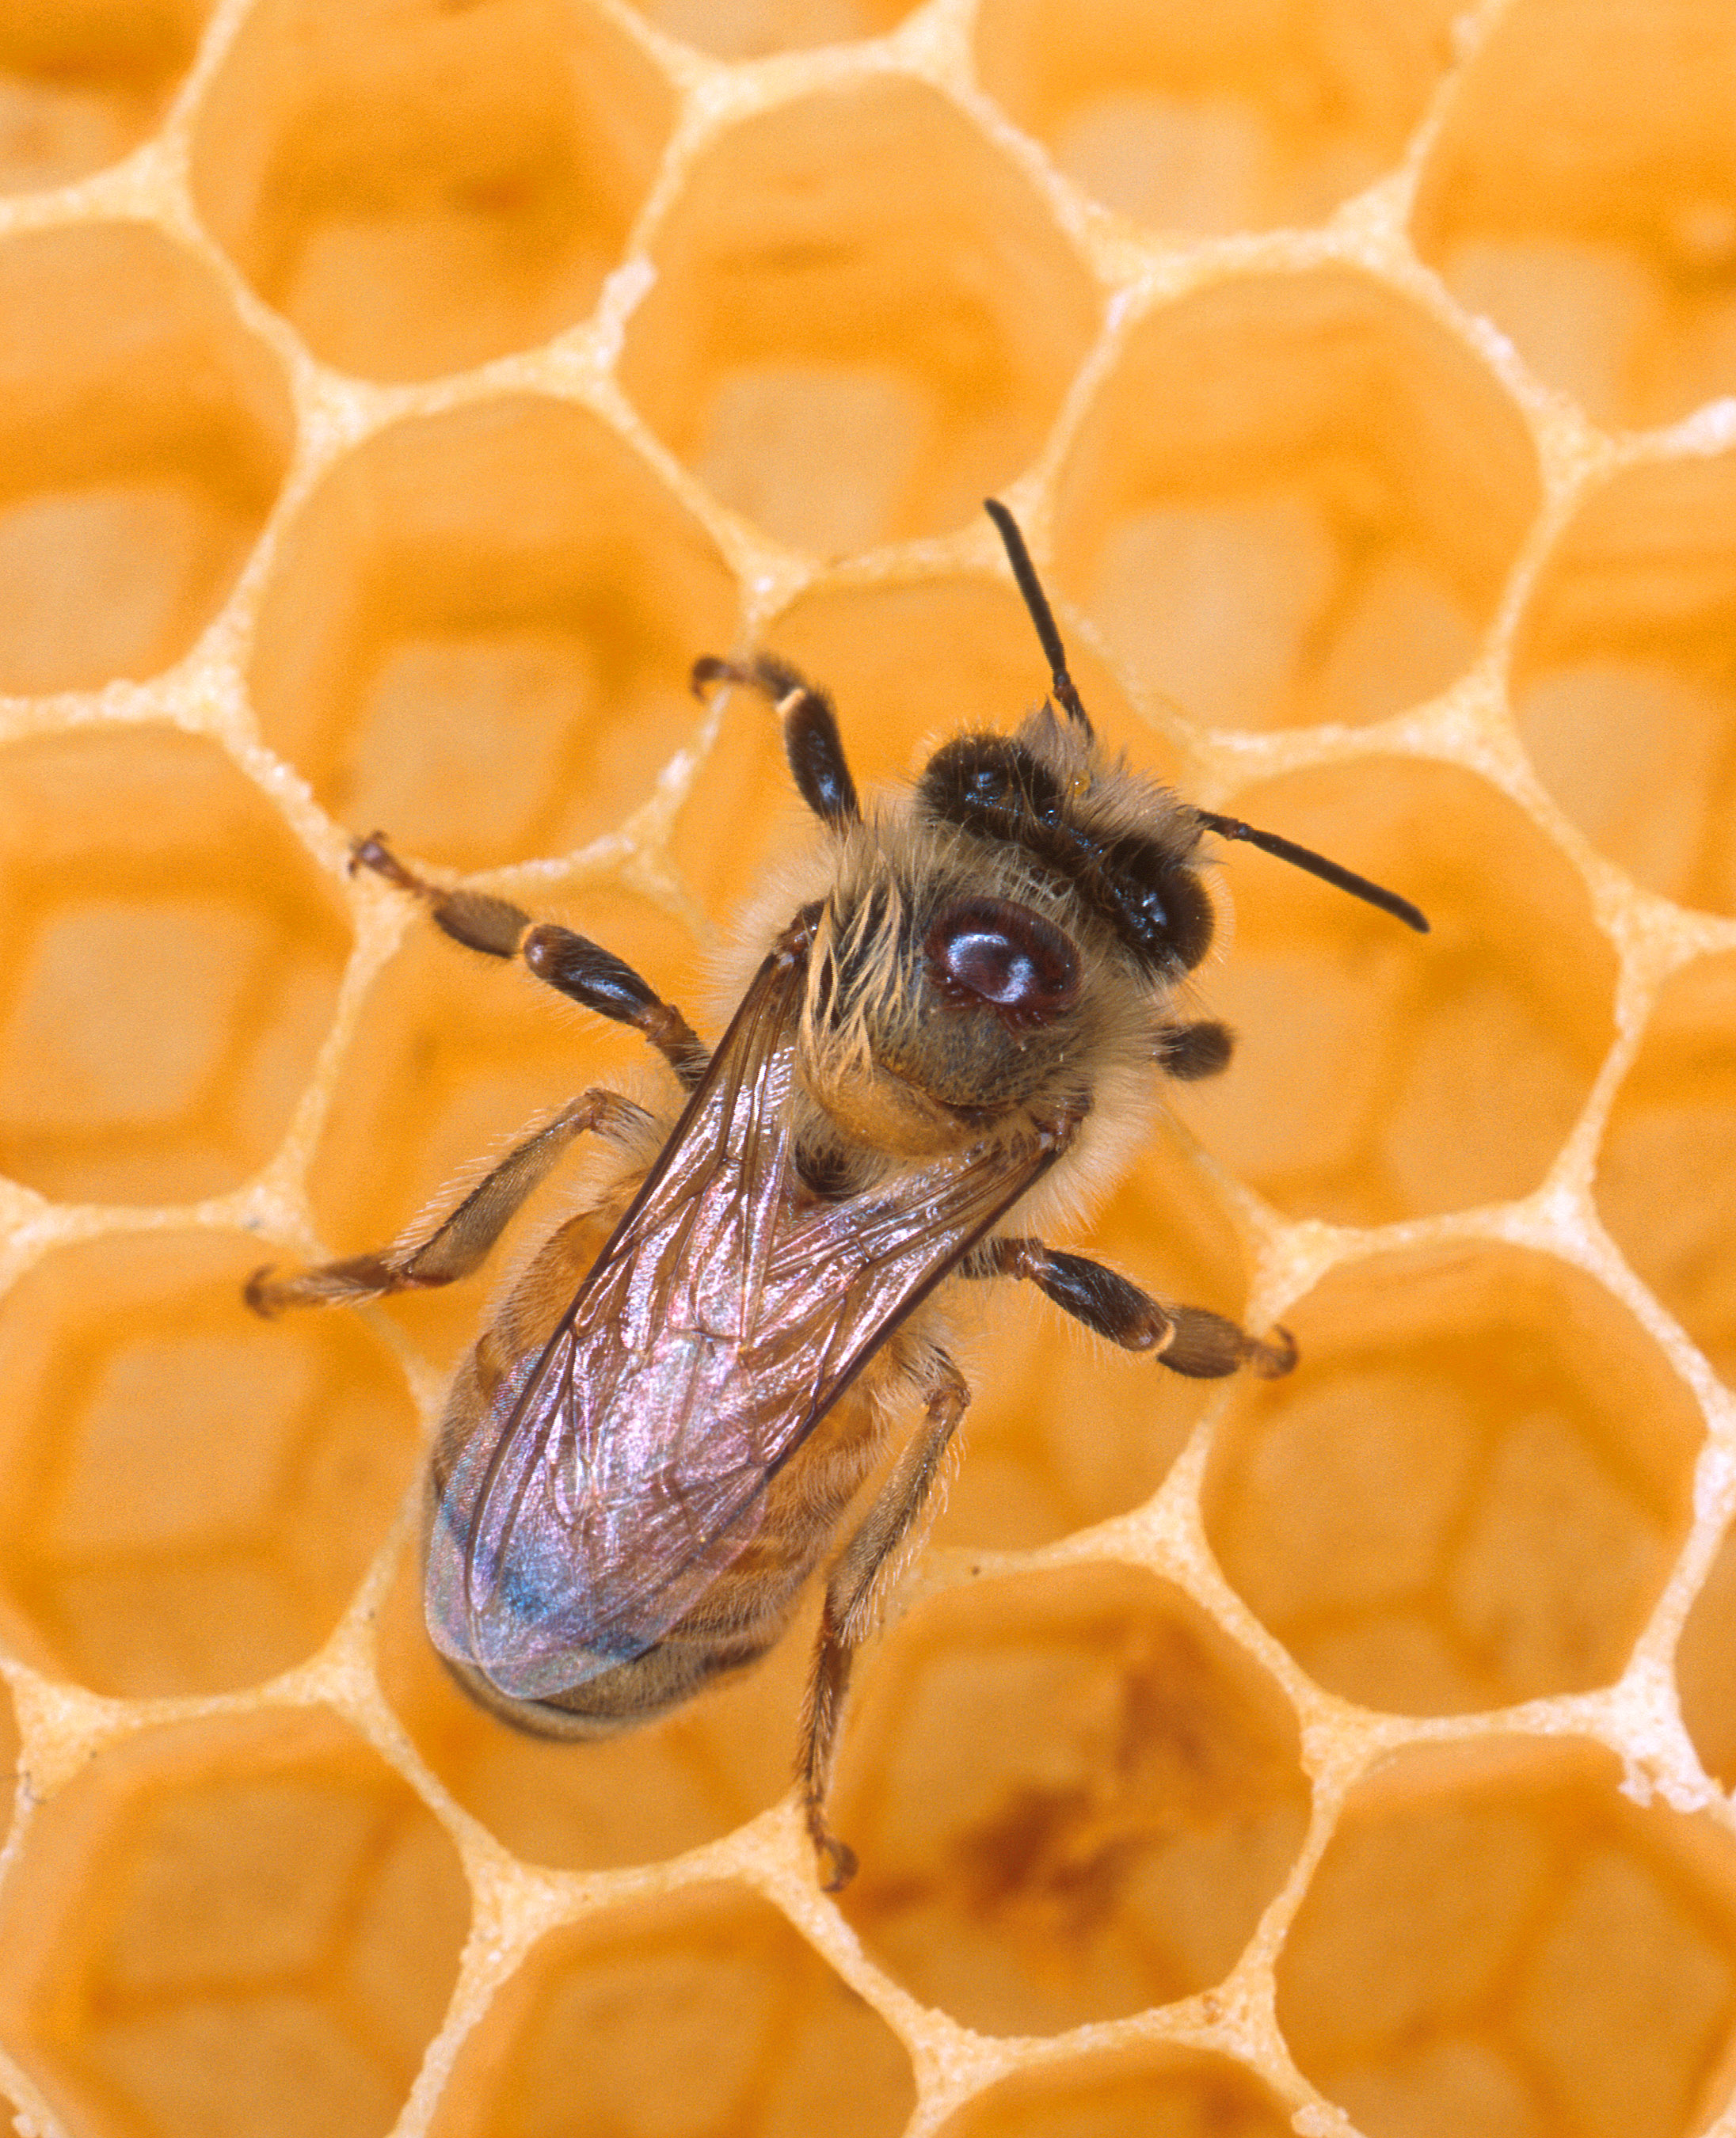 Honey bee in a hive. Image from library.thinkquest.org